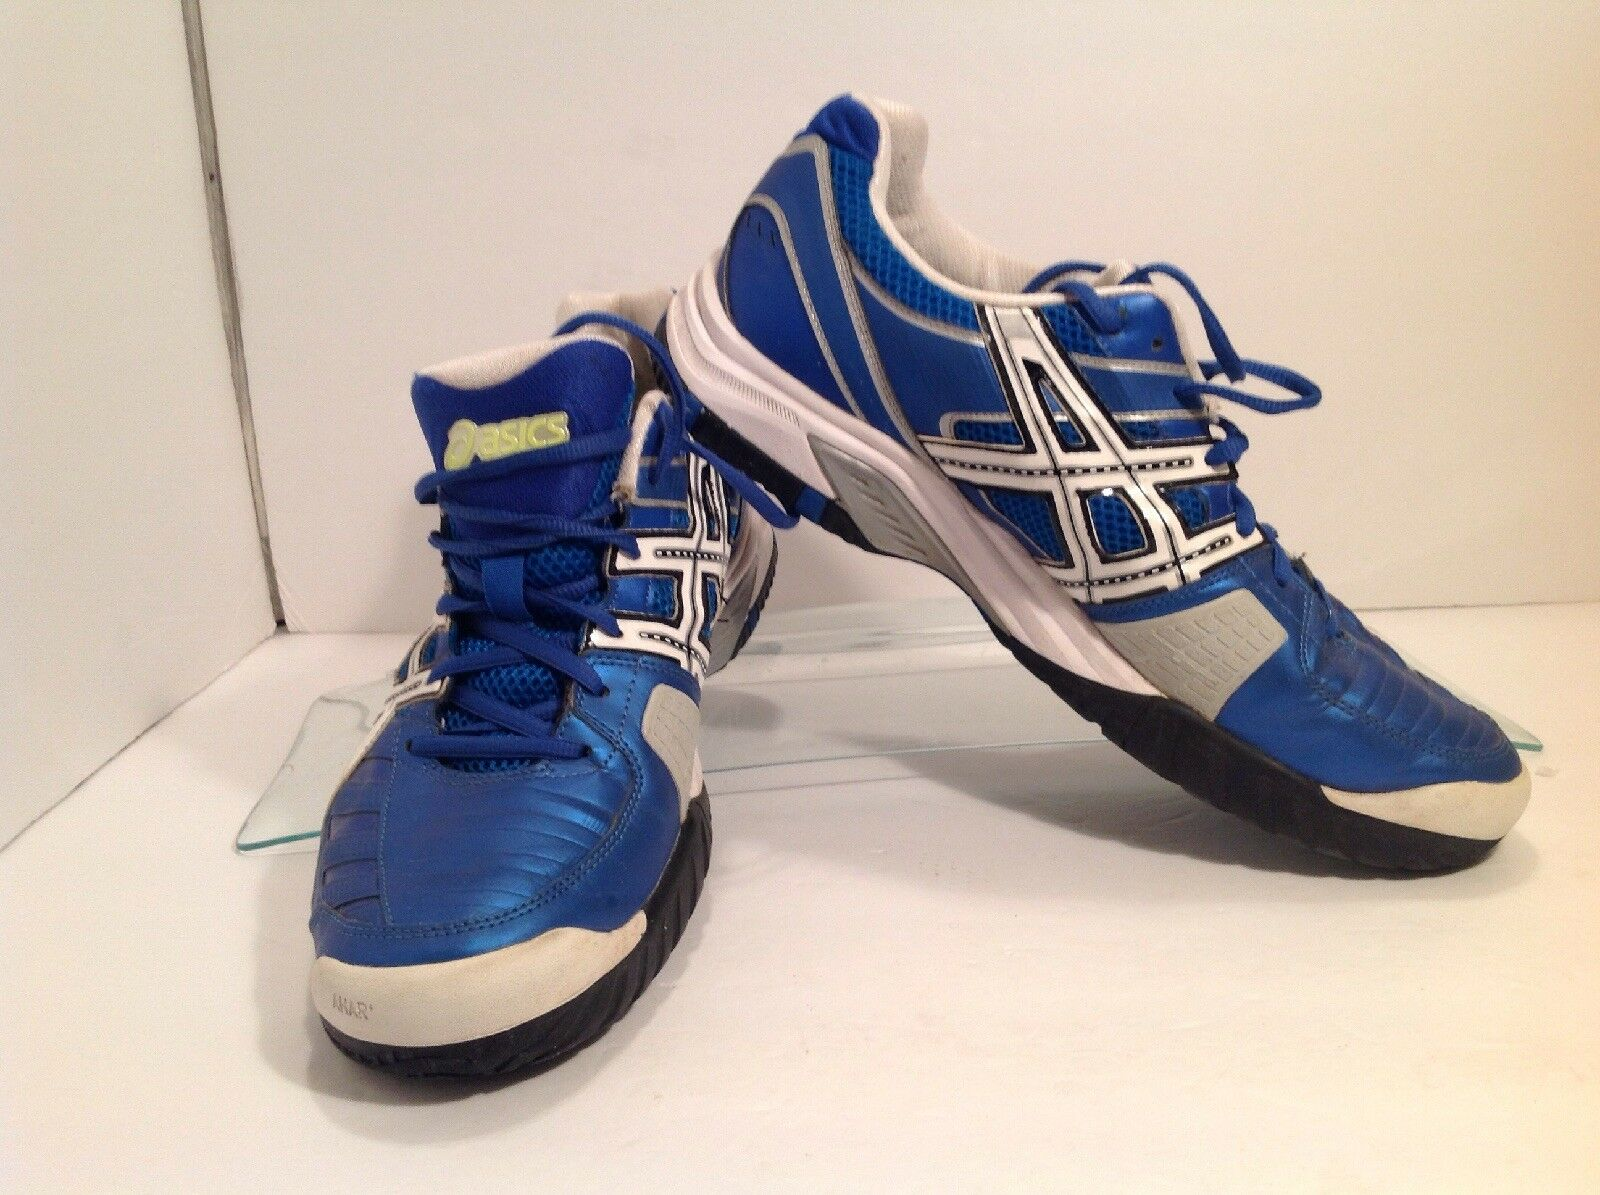 ASICS Men's E303Y Gel-Challenger Athletic shoes Size 11.5 bluee white